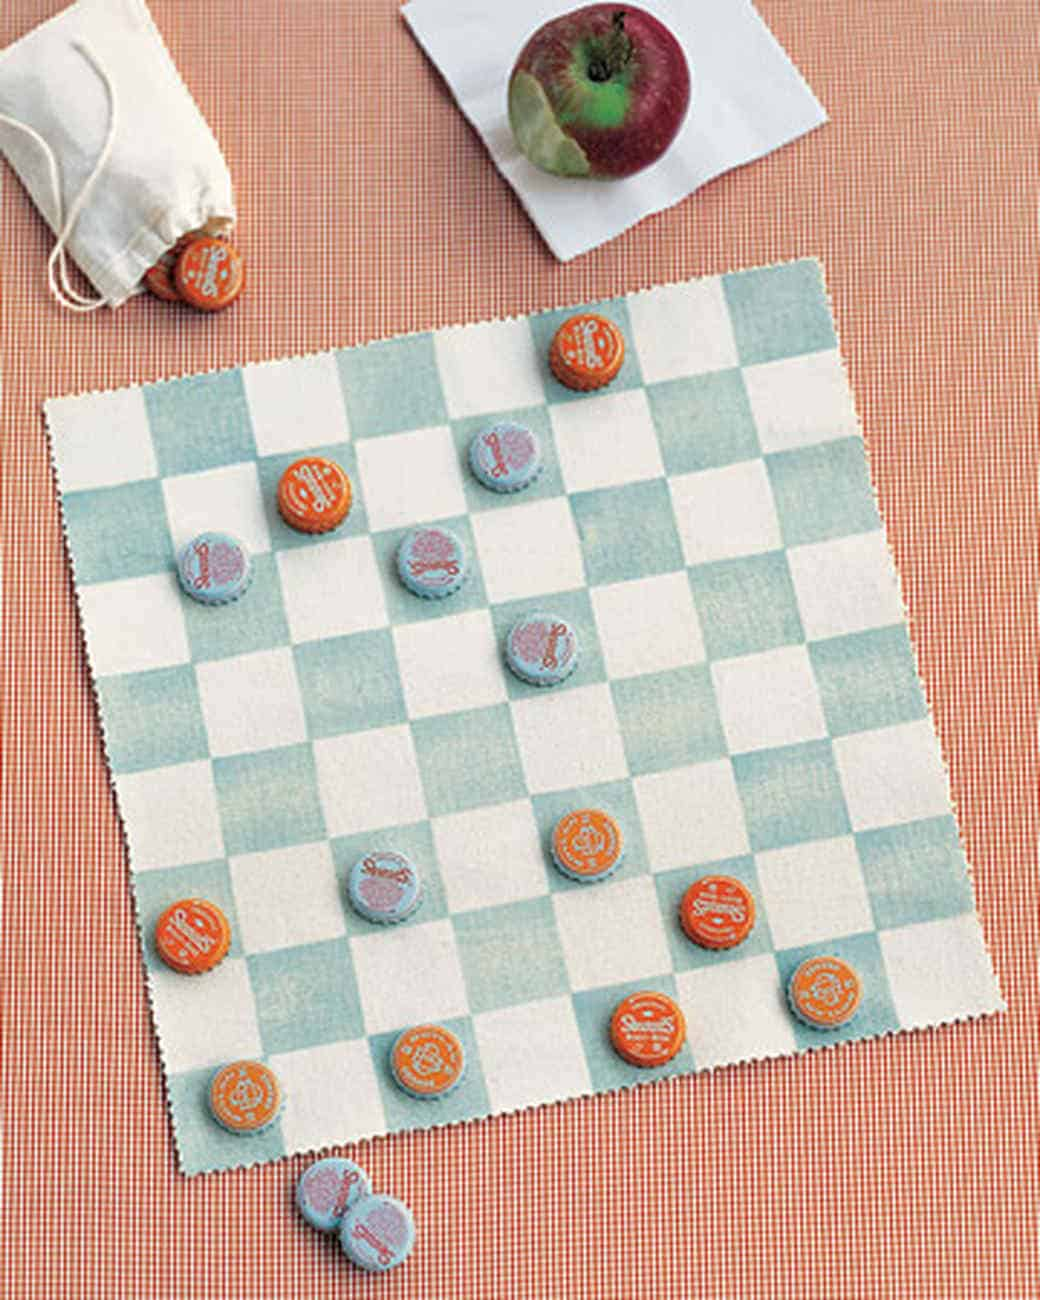 Bottle cap checkers game with a DIY canvas board